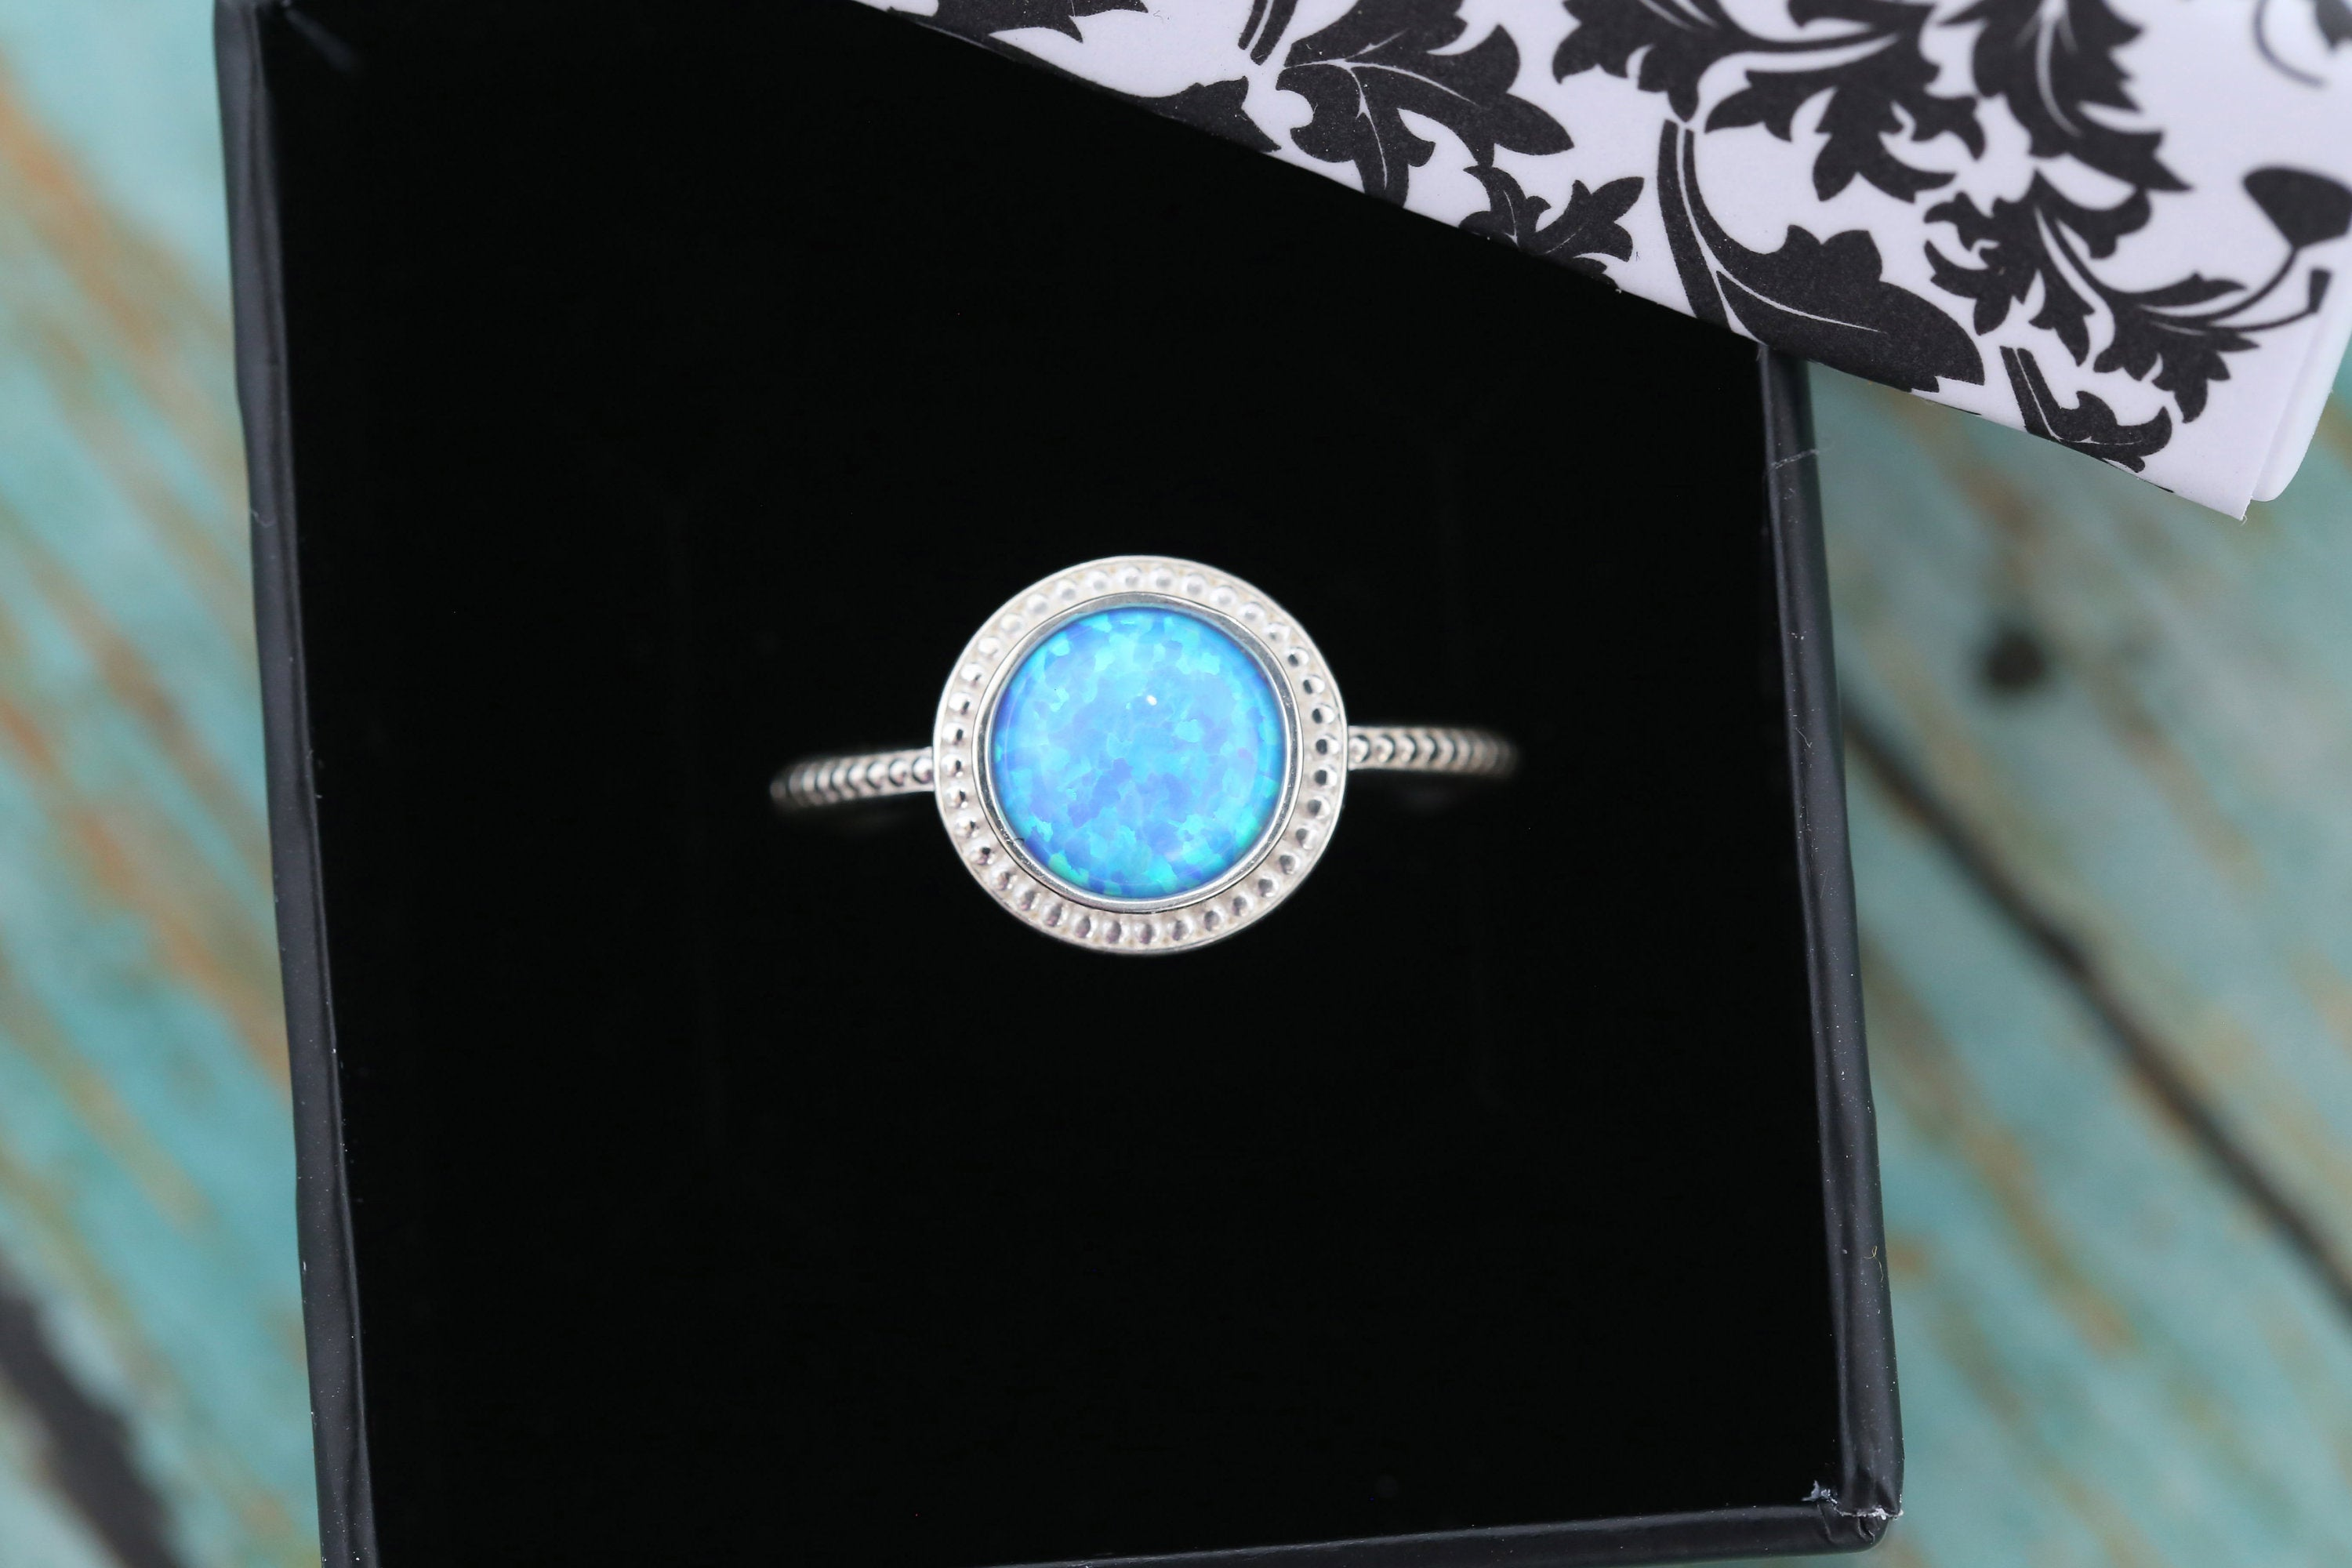 8mm Opal Cremation Ring - Sterling Silver Beaded Ring - Cremation Jewelry - Ash Ring - Ash Jewelry - Urn Ring - Pet Loss - 8mm4